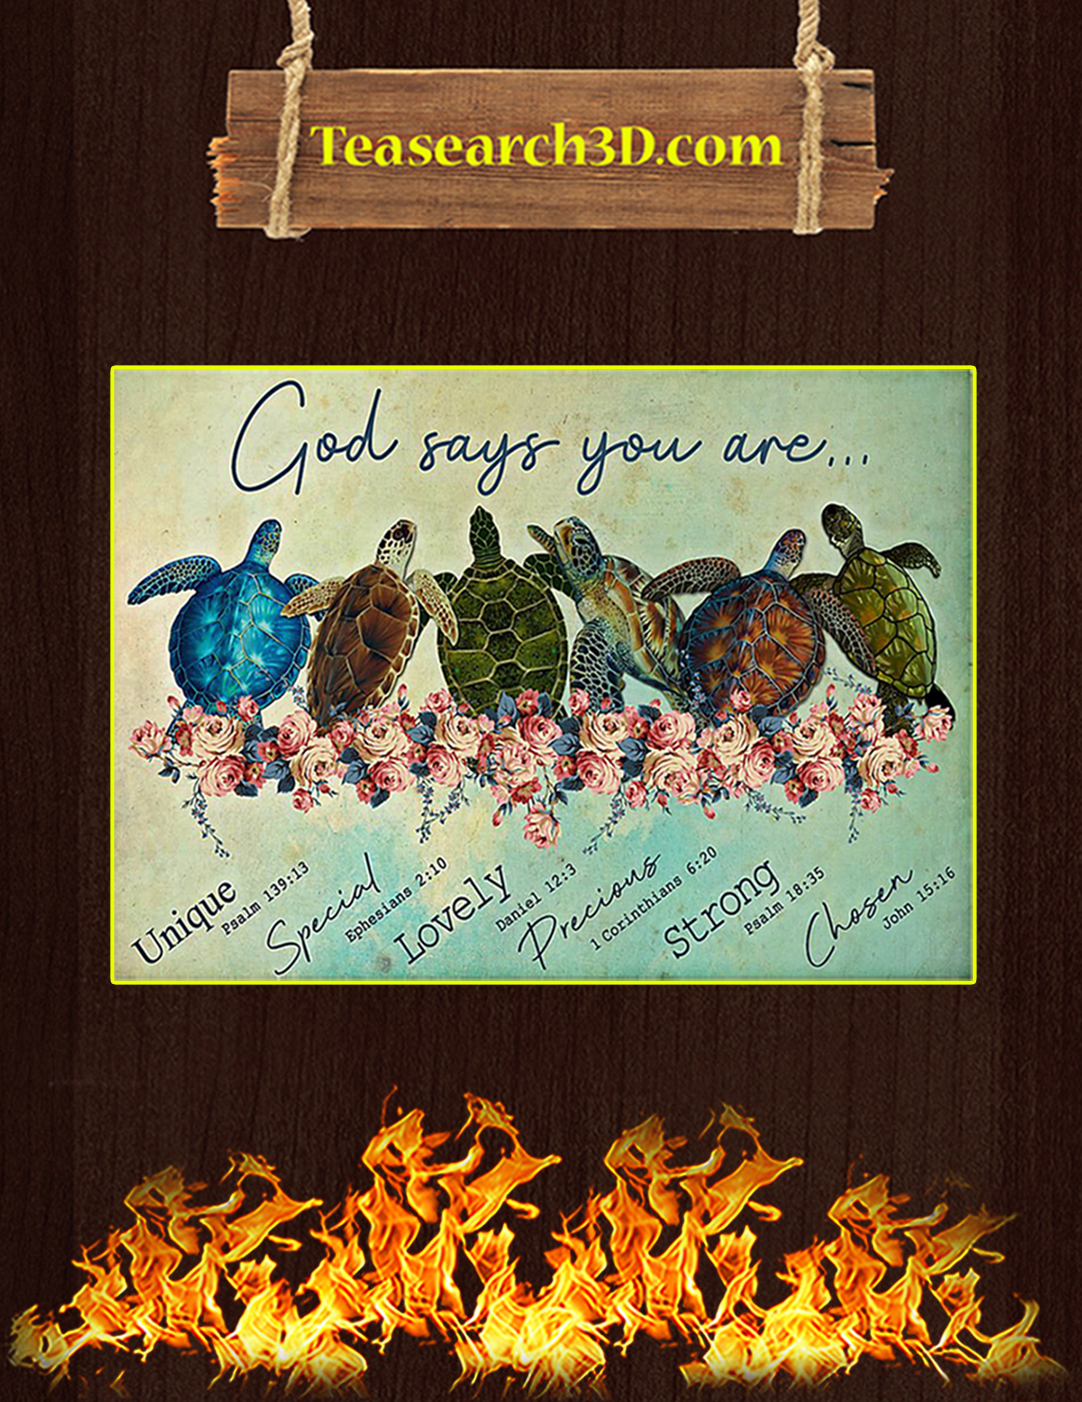 Turtle god says you are poster A2